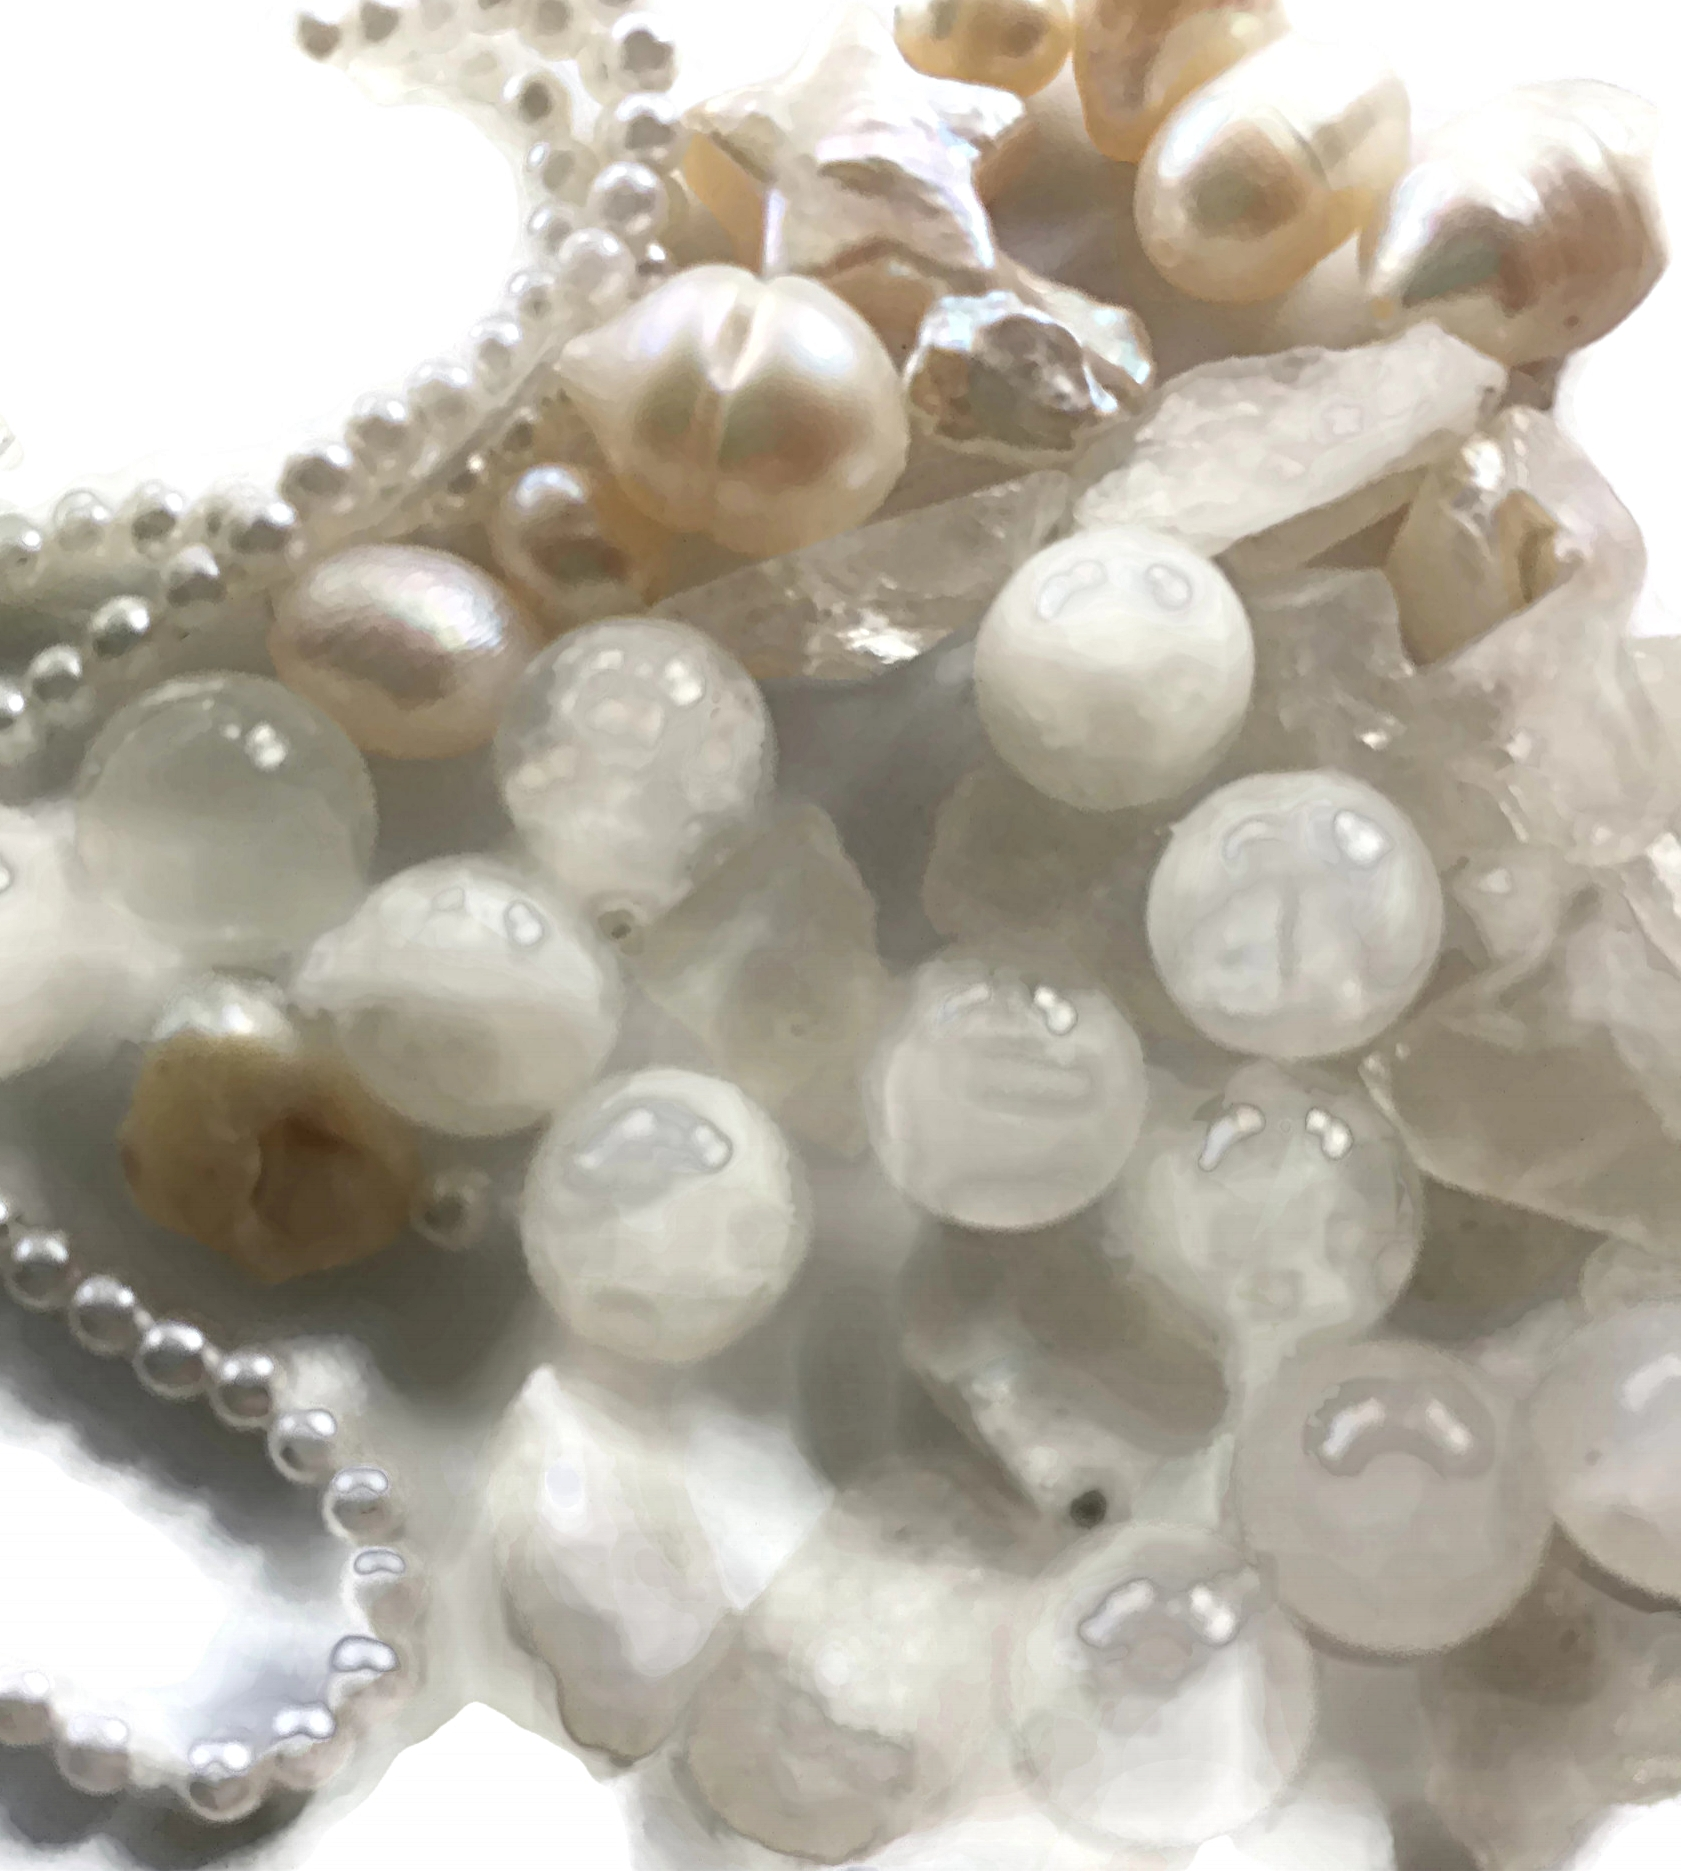 the Moon's gems increase purity + promote faith + charity + integrity + helps with the female reproductive - Gems: Pearl, Cultured Pearls, Moonstone, Selenite